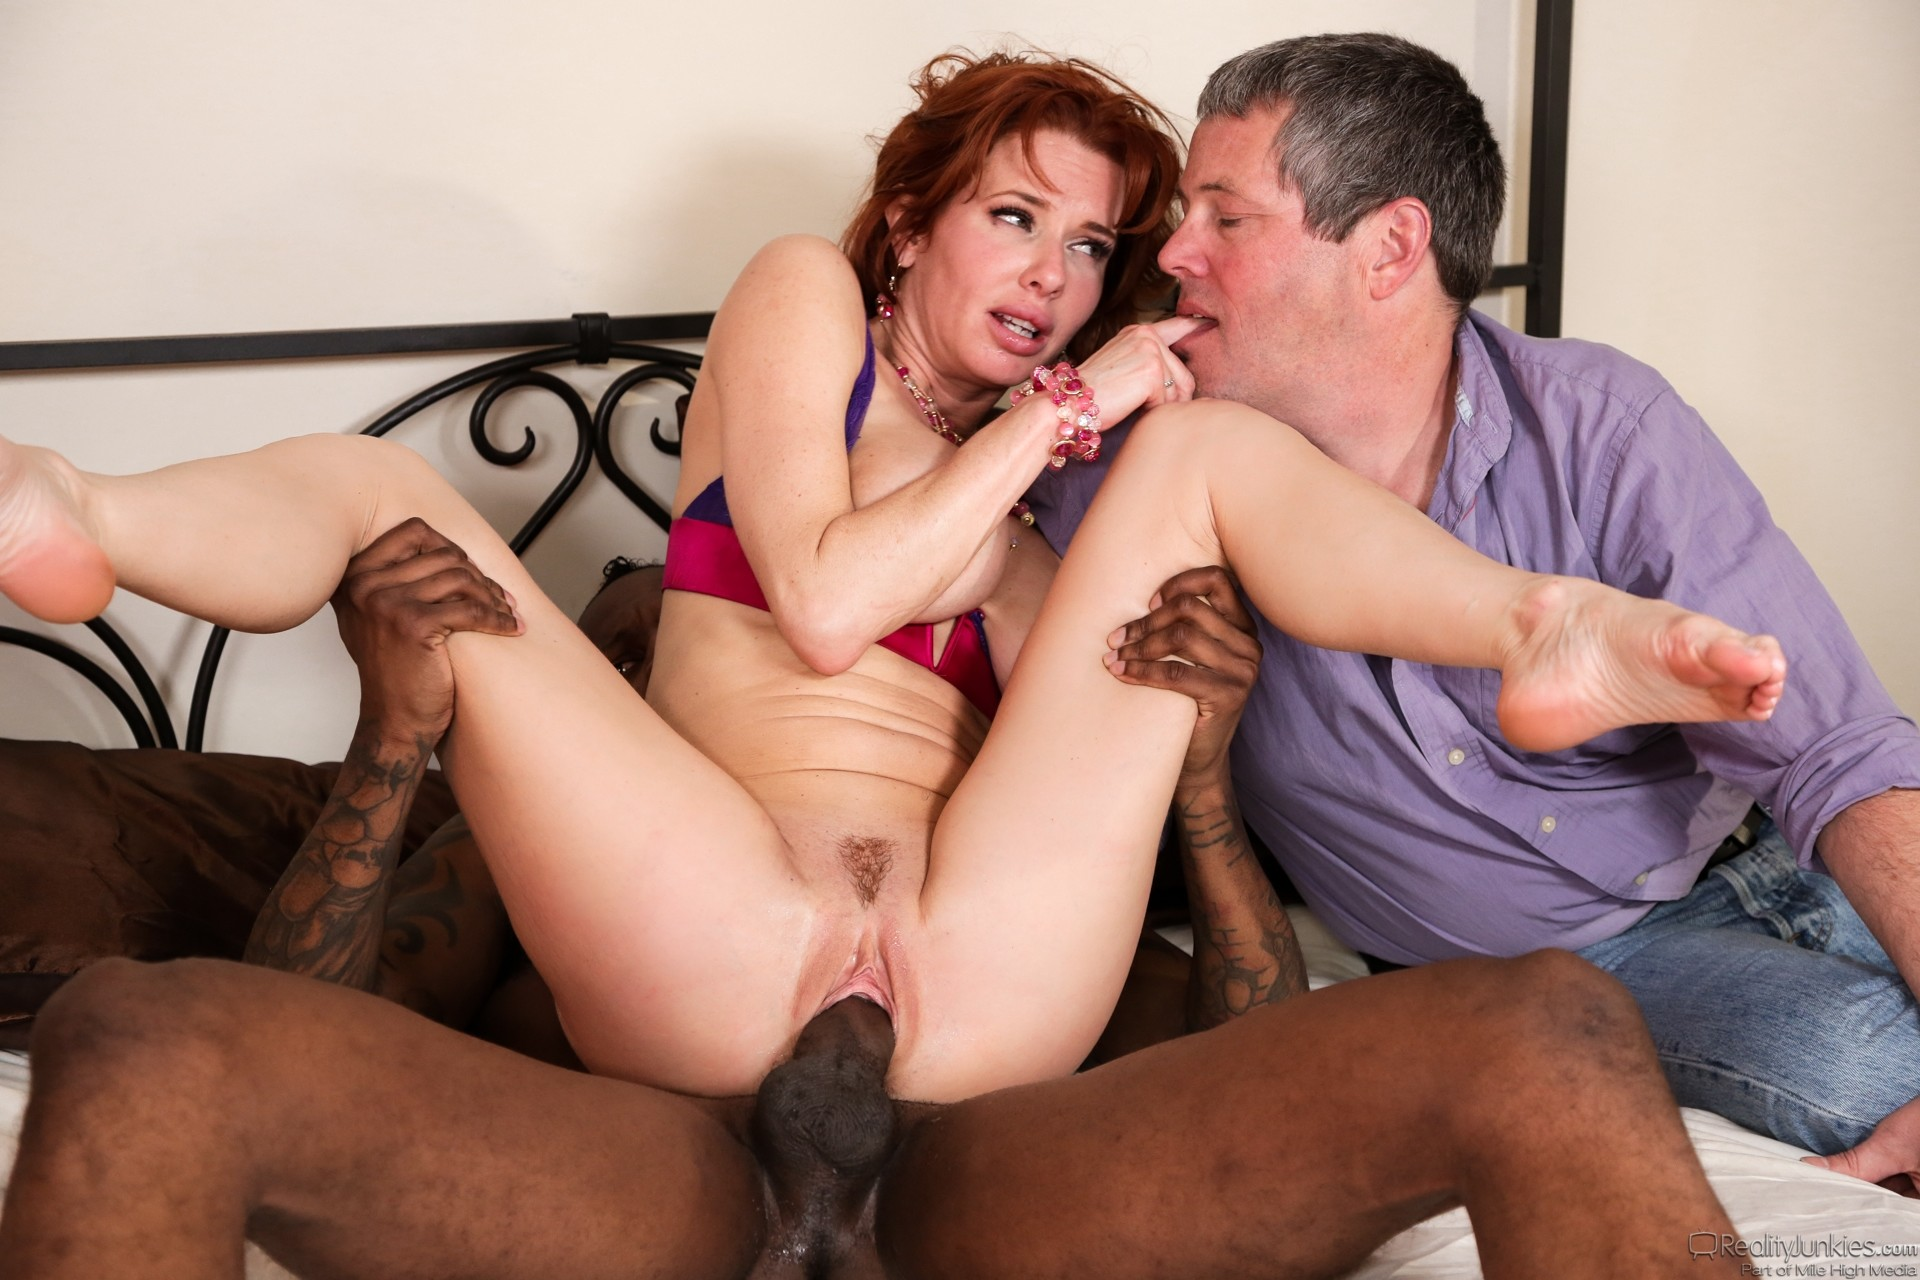 Xxx wife movie